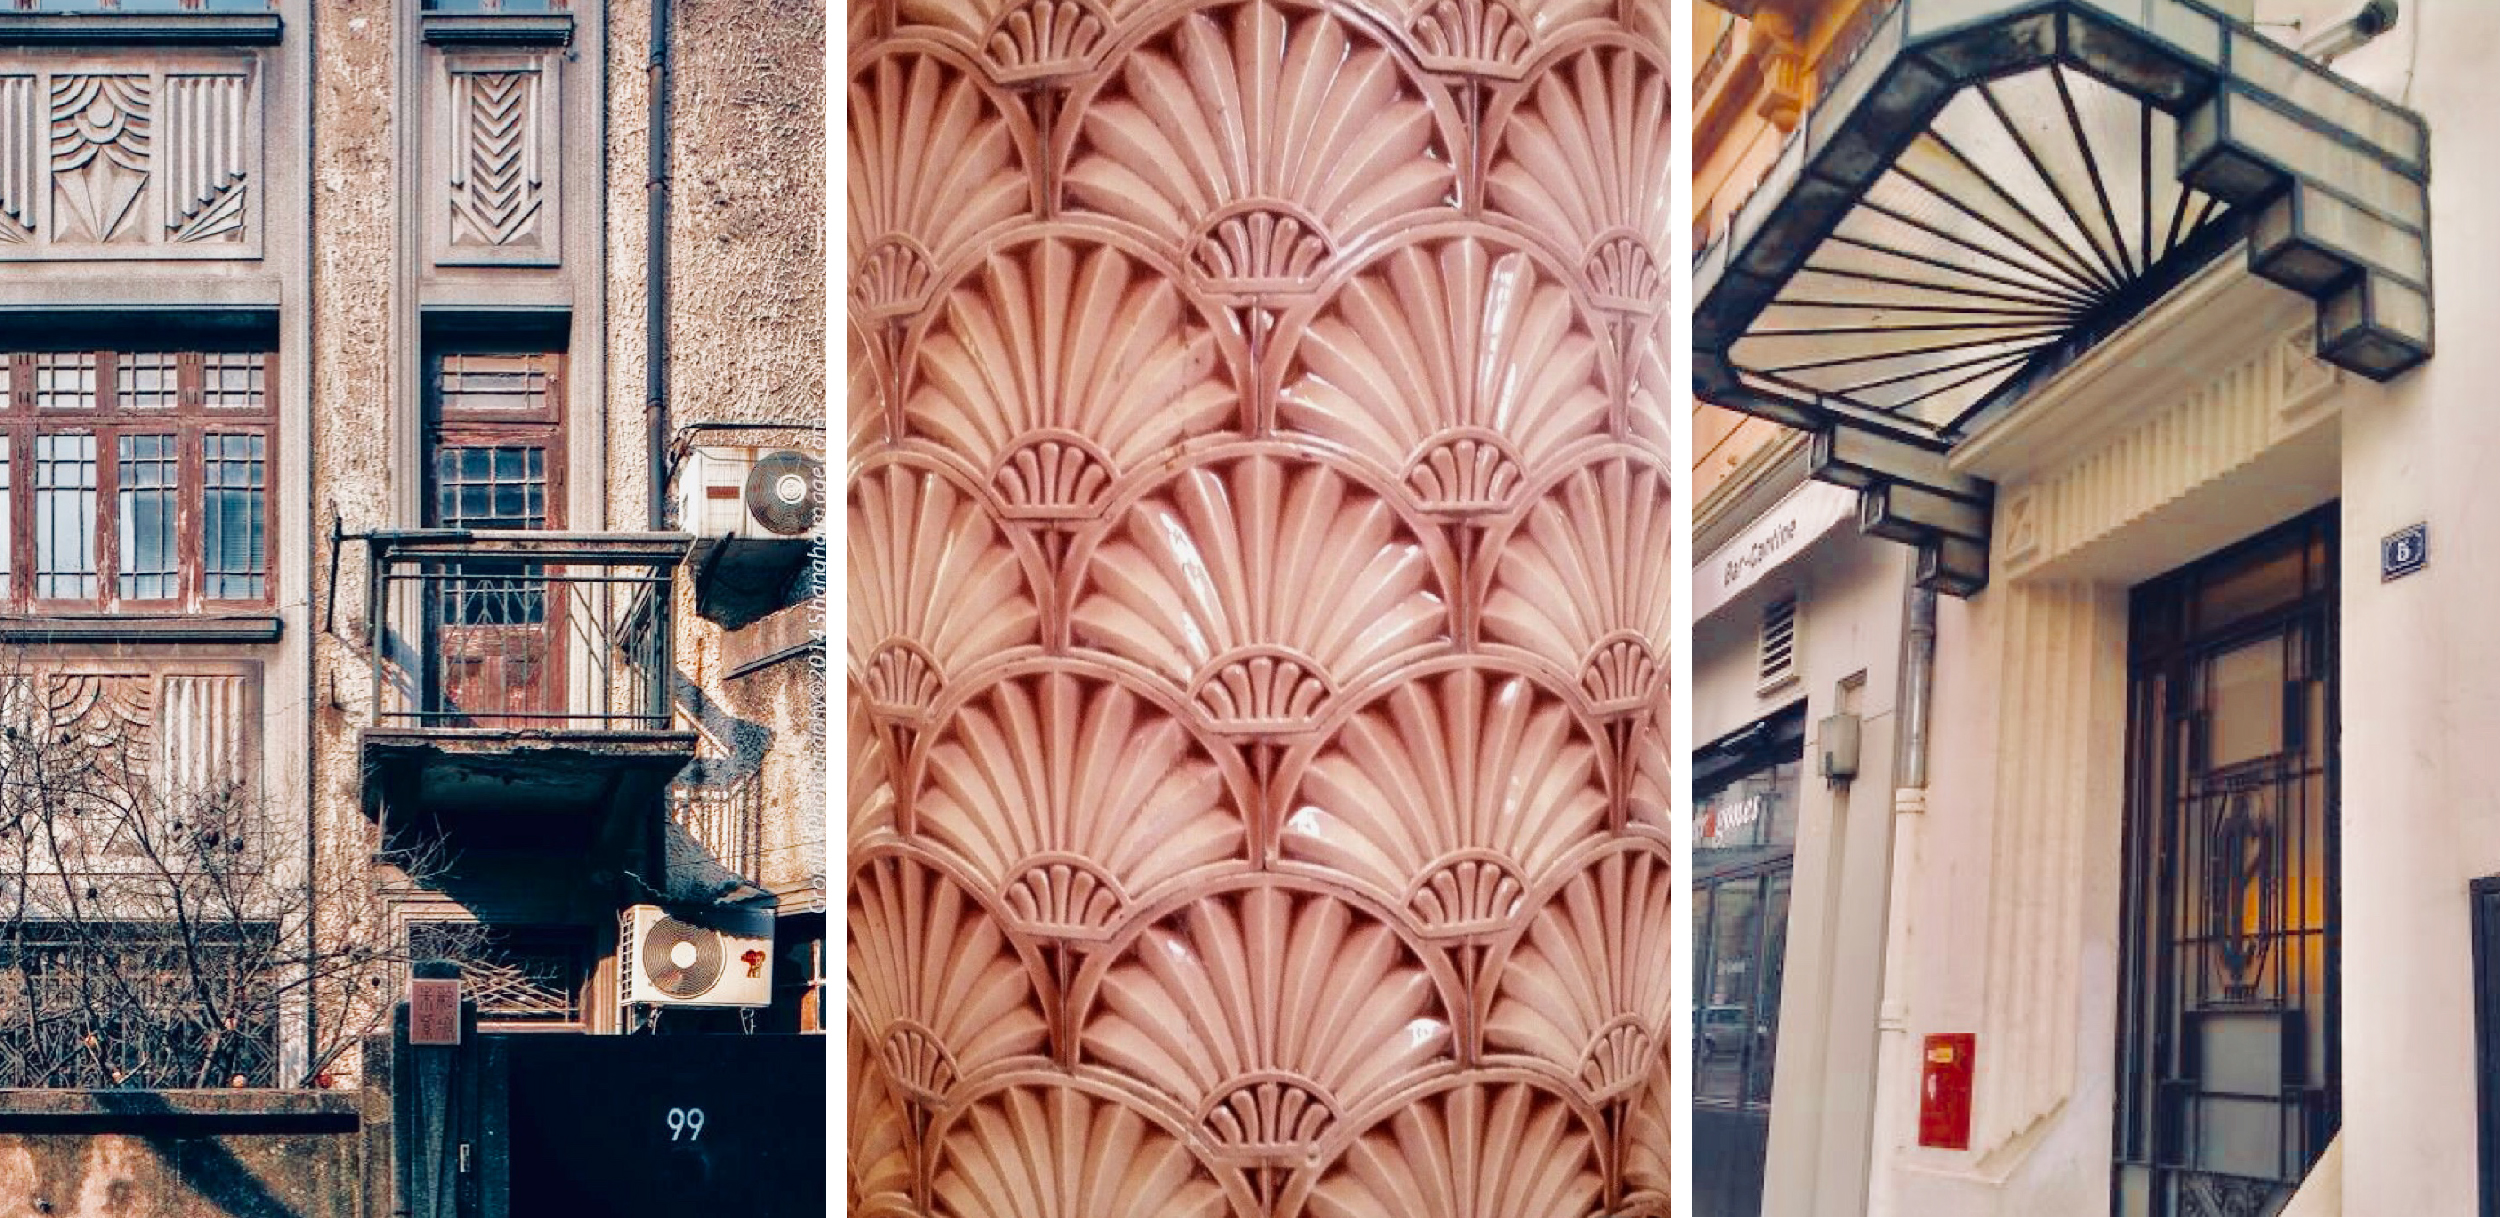 Shanghai Art Deco inspiration